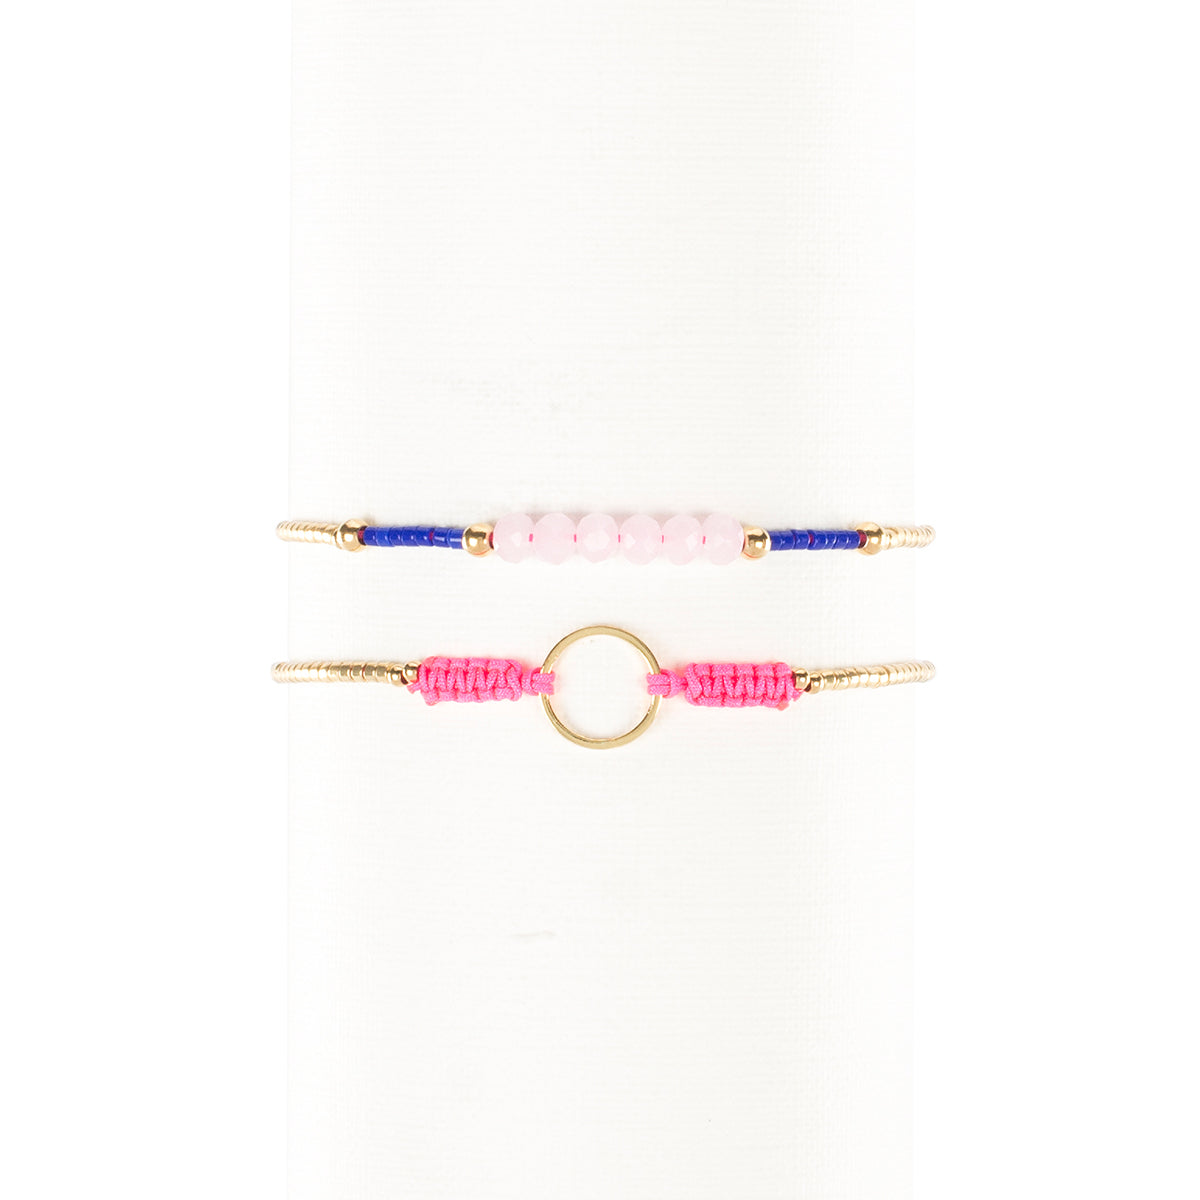 Mabel And Bea Duo Neon Pink Translucent Pink And Blue With Gold Rustic Cuff